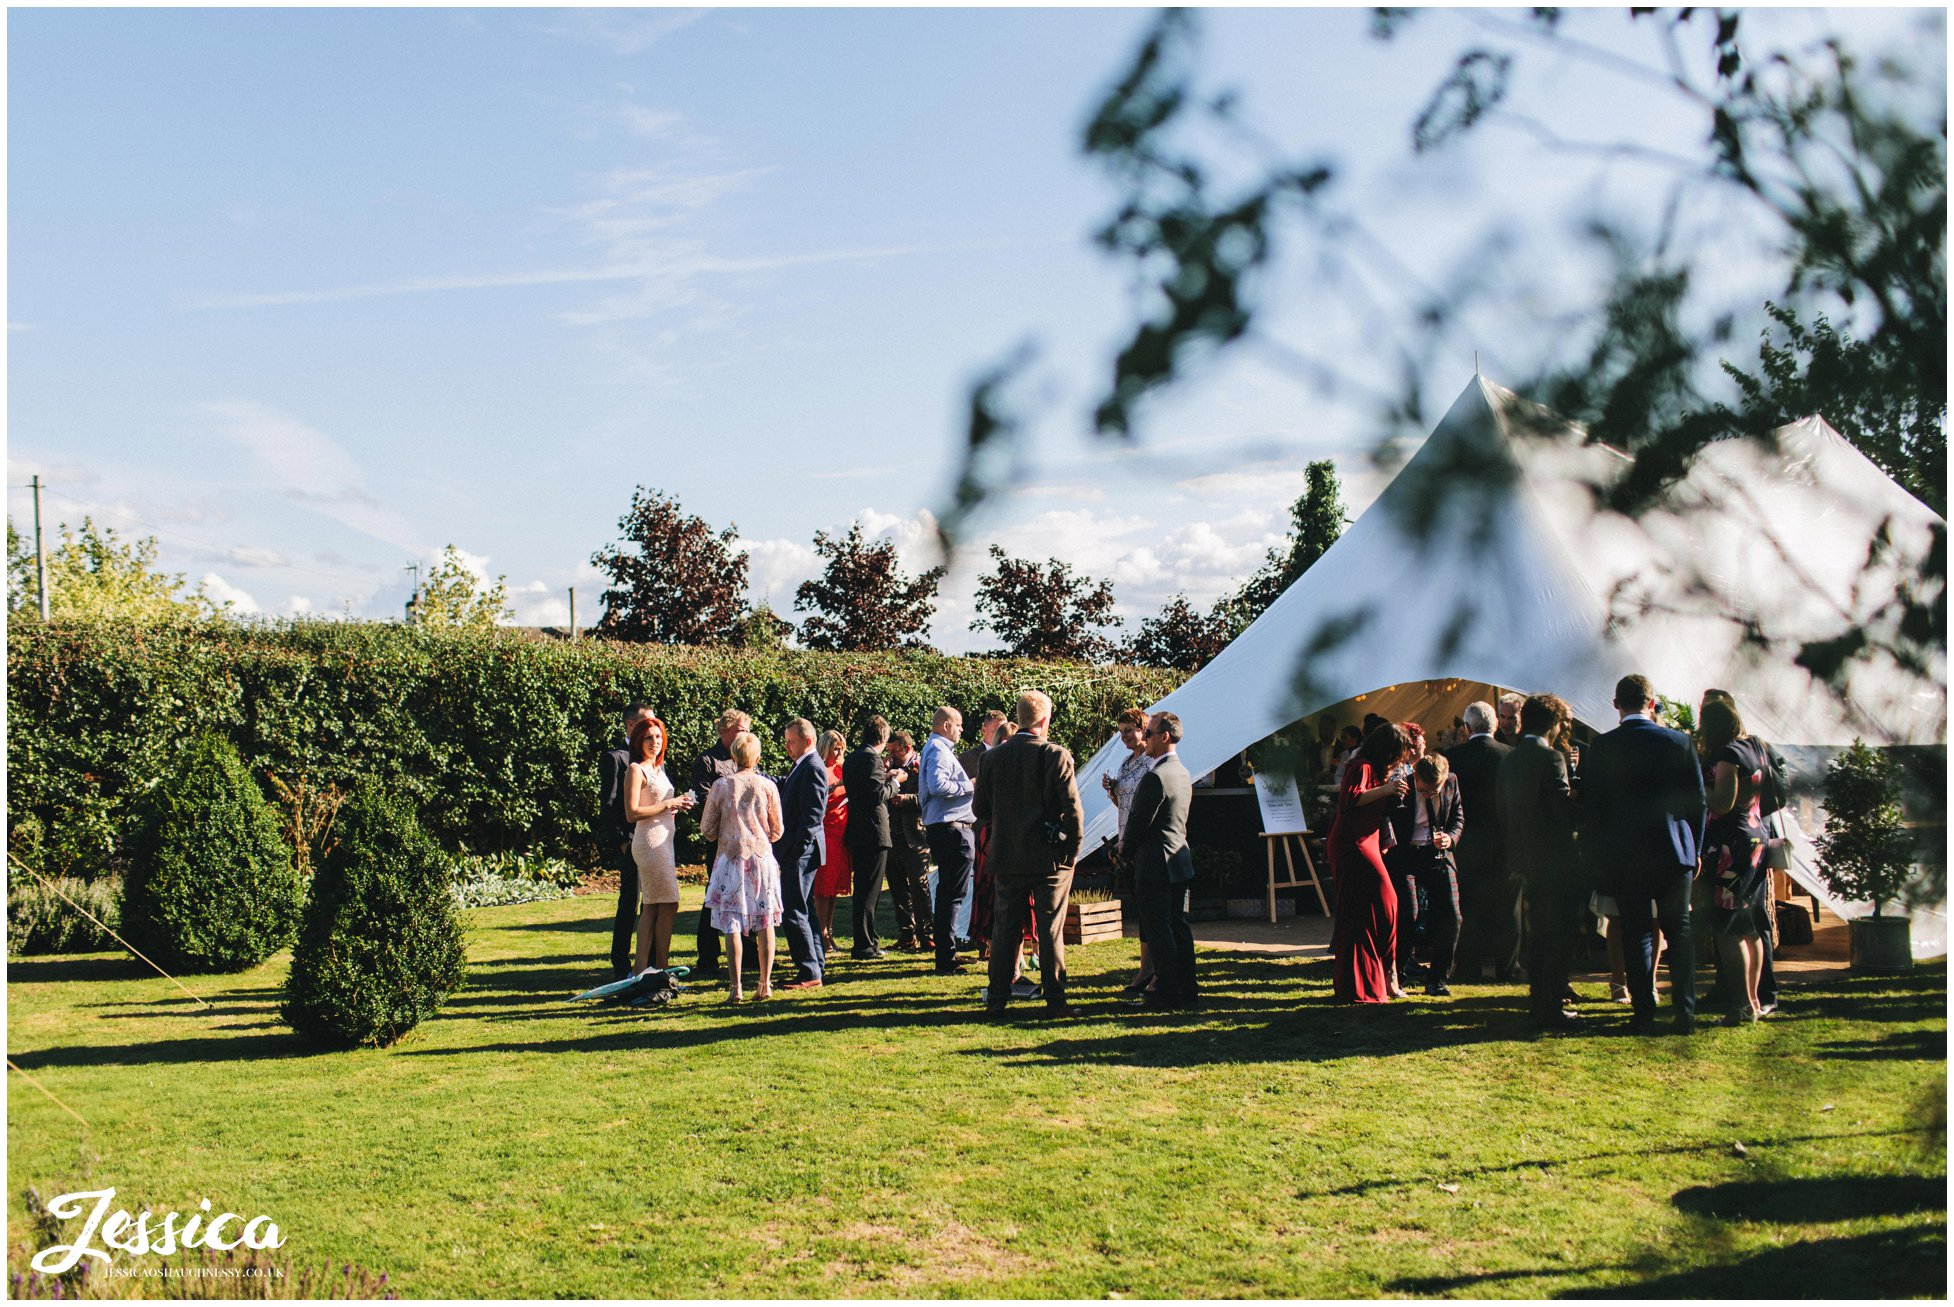 guests enjoy the sunshine at the farm wedding reception